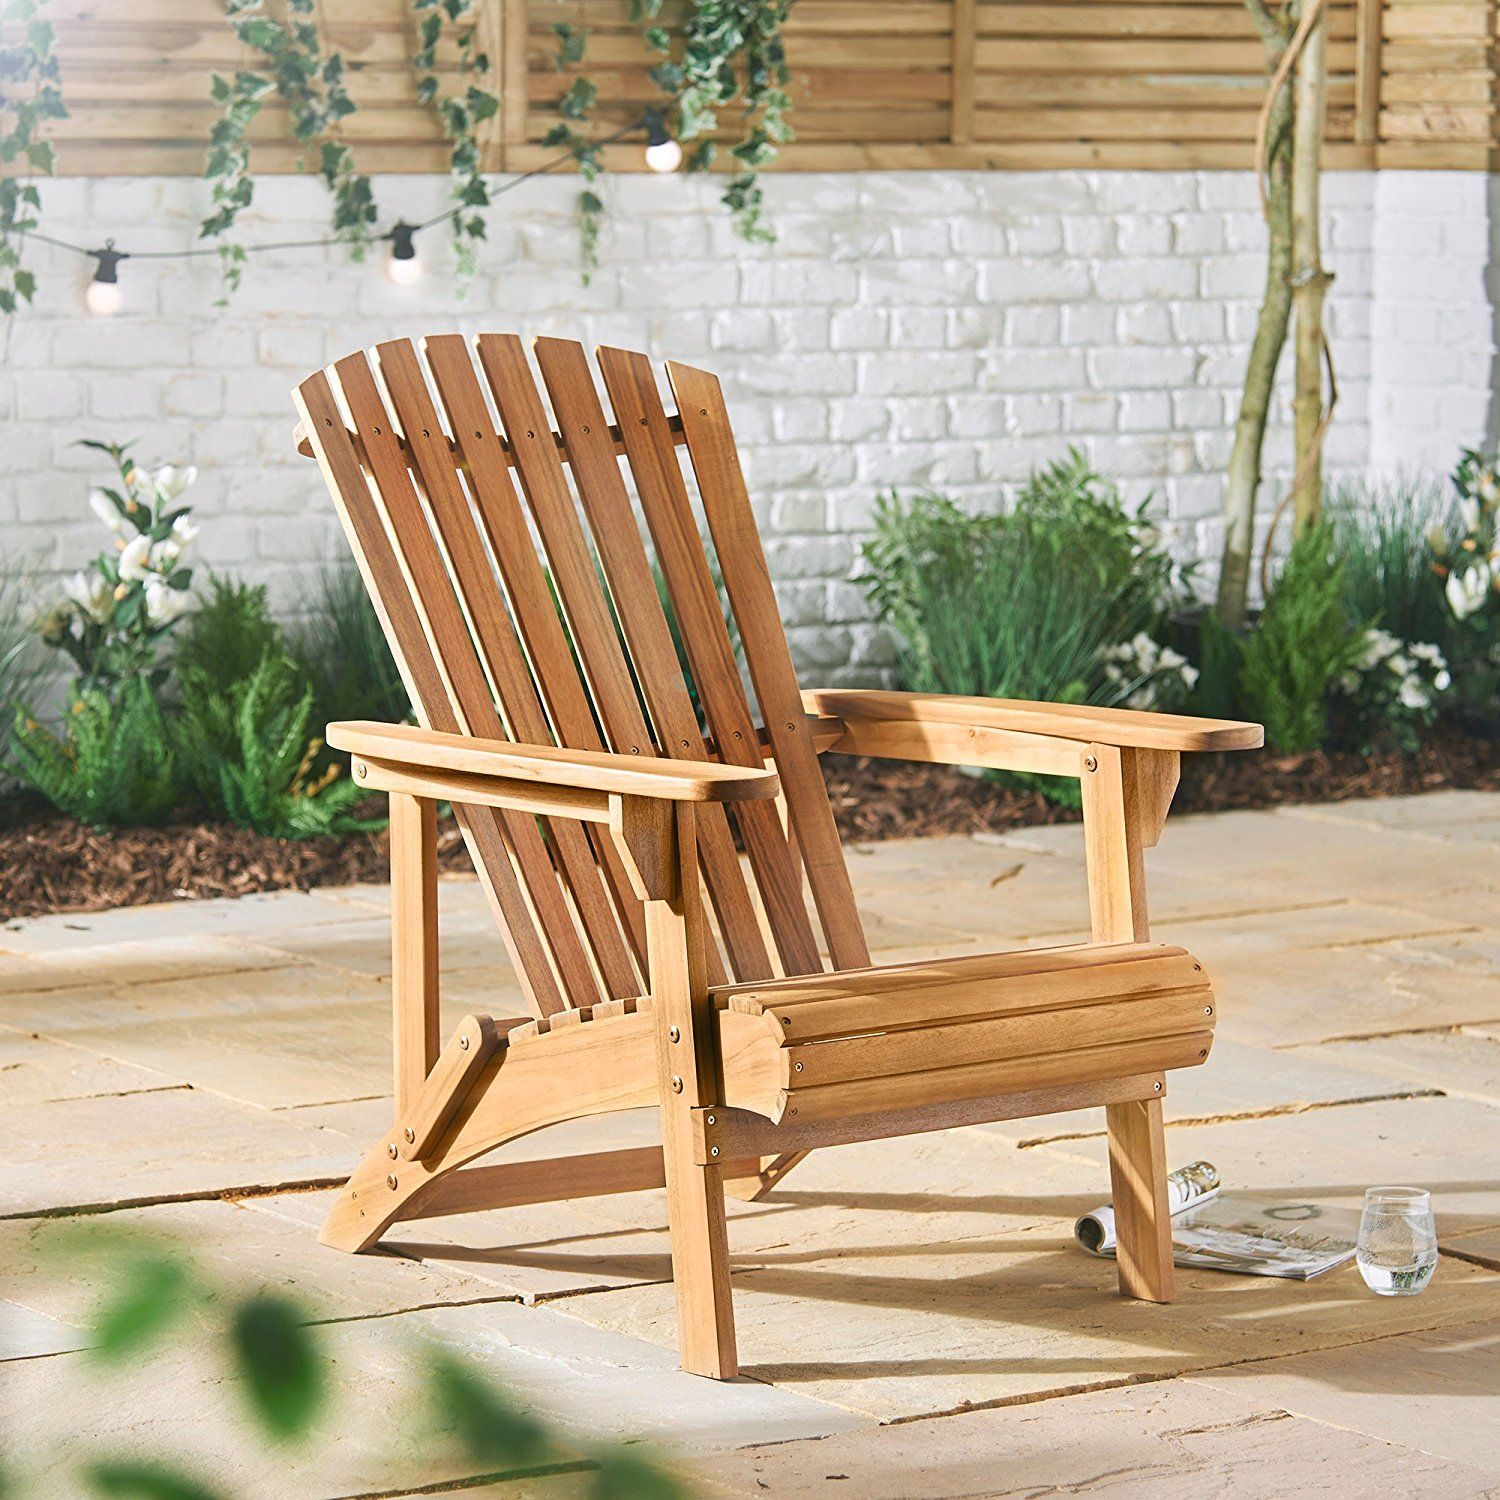 Rocking Adirondack Chair Garden Chairs Outdoor Chairs Patio Chairs